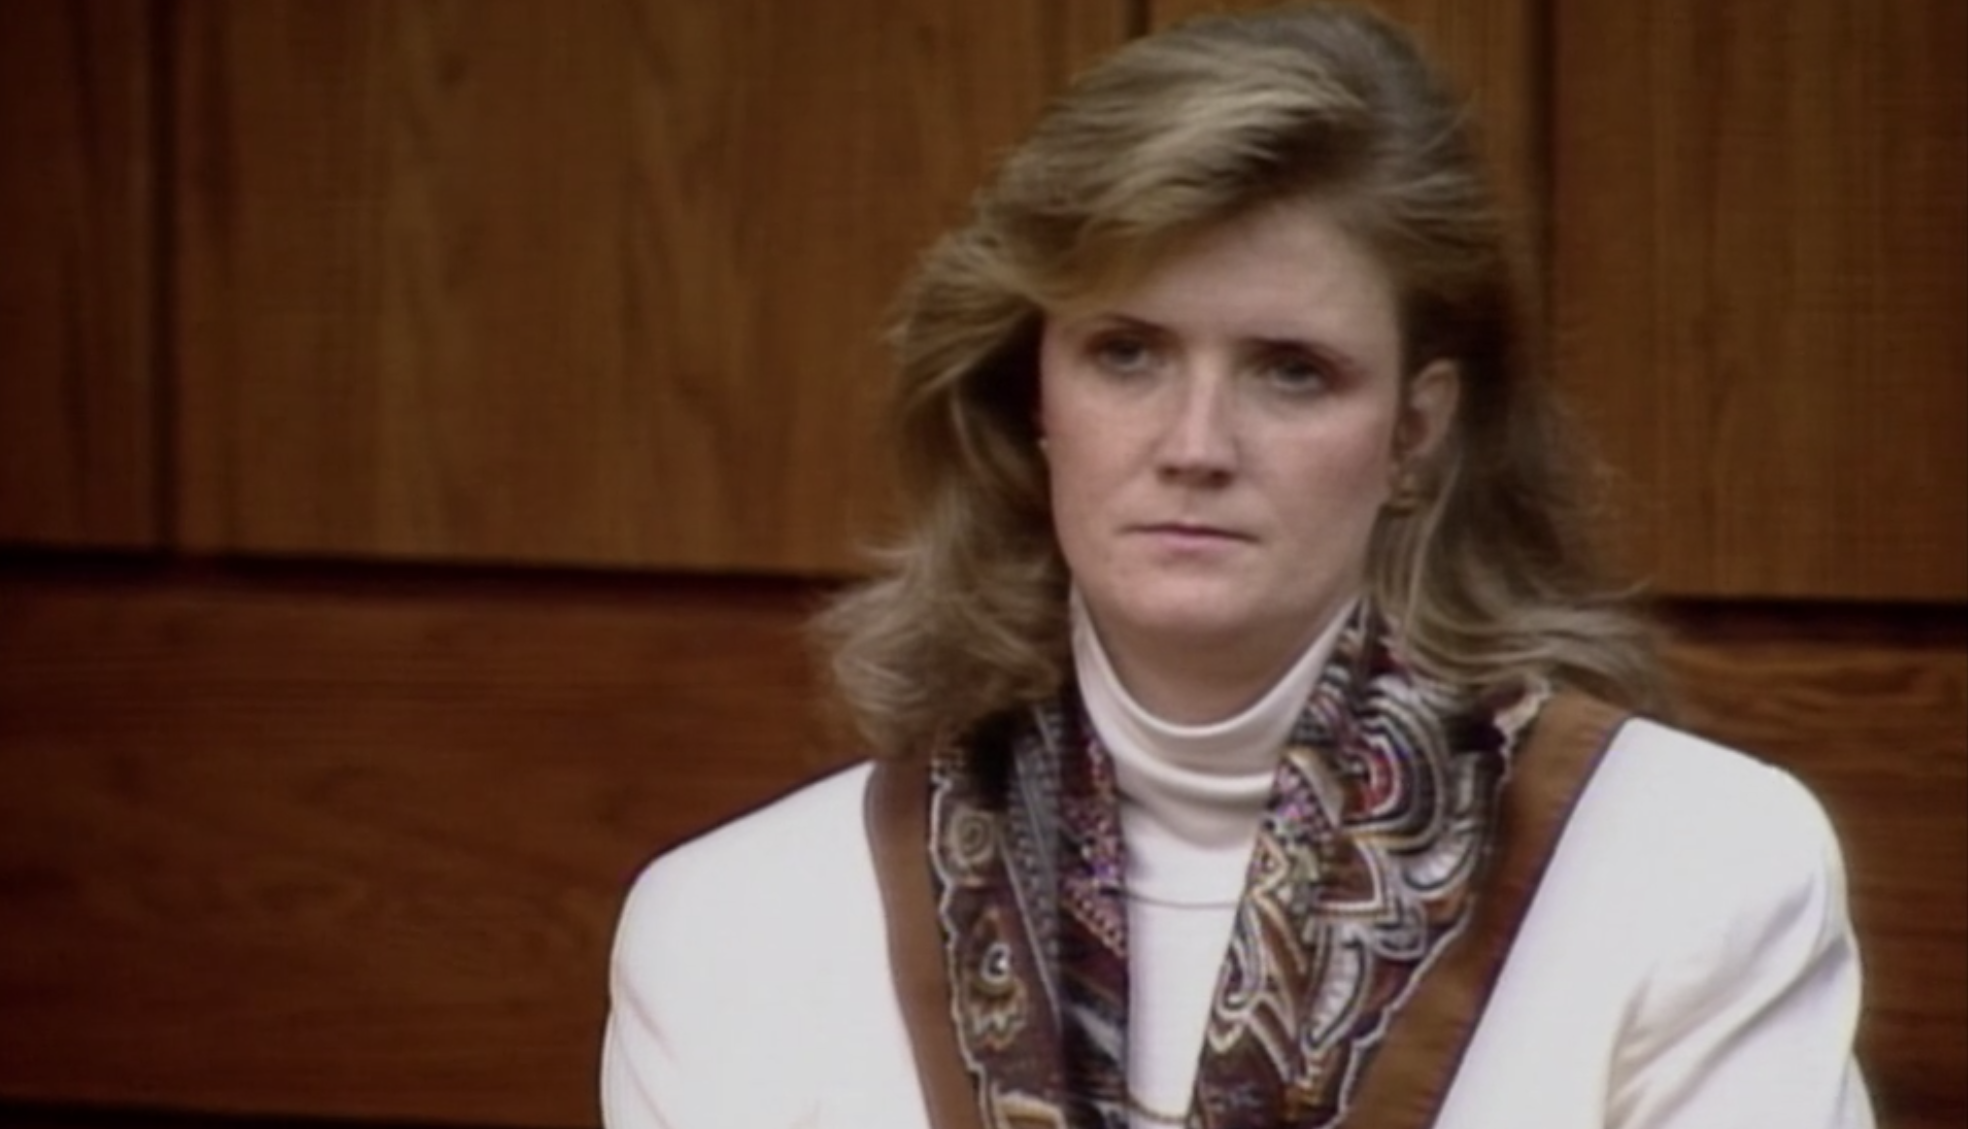 Regina Keegan, testifying at Lorena Bobbitt's trial